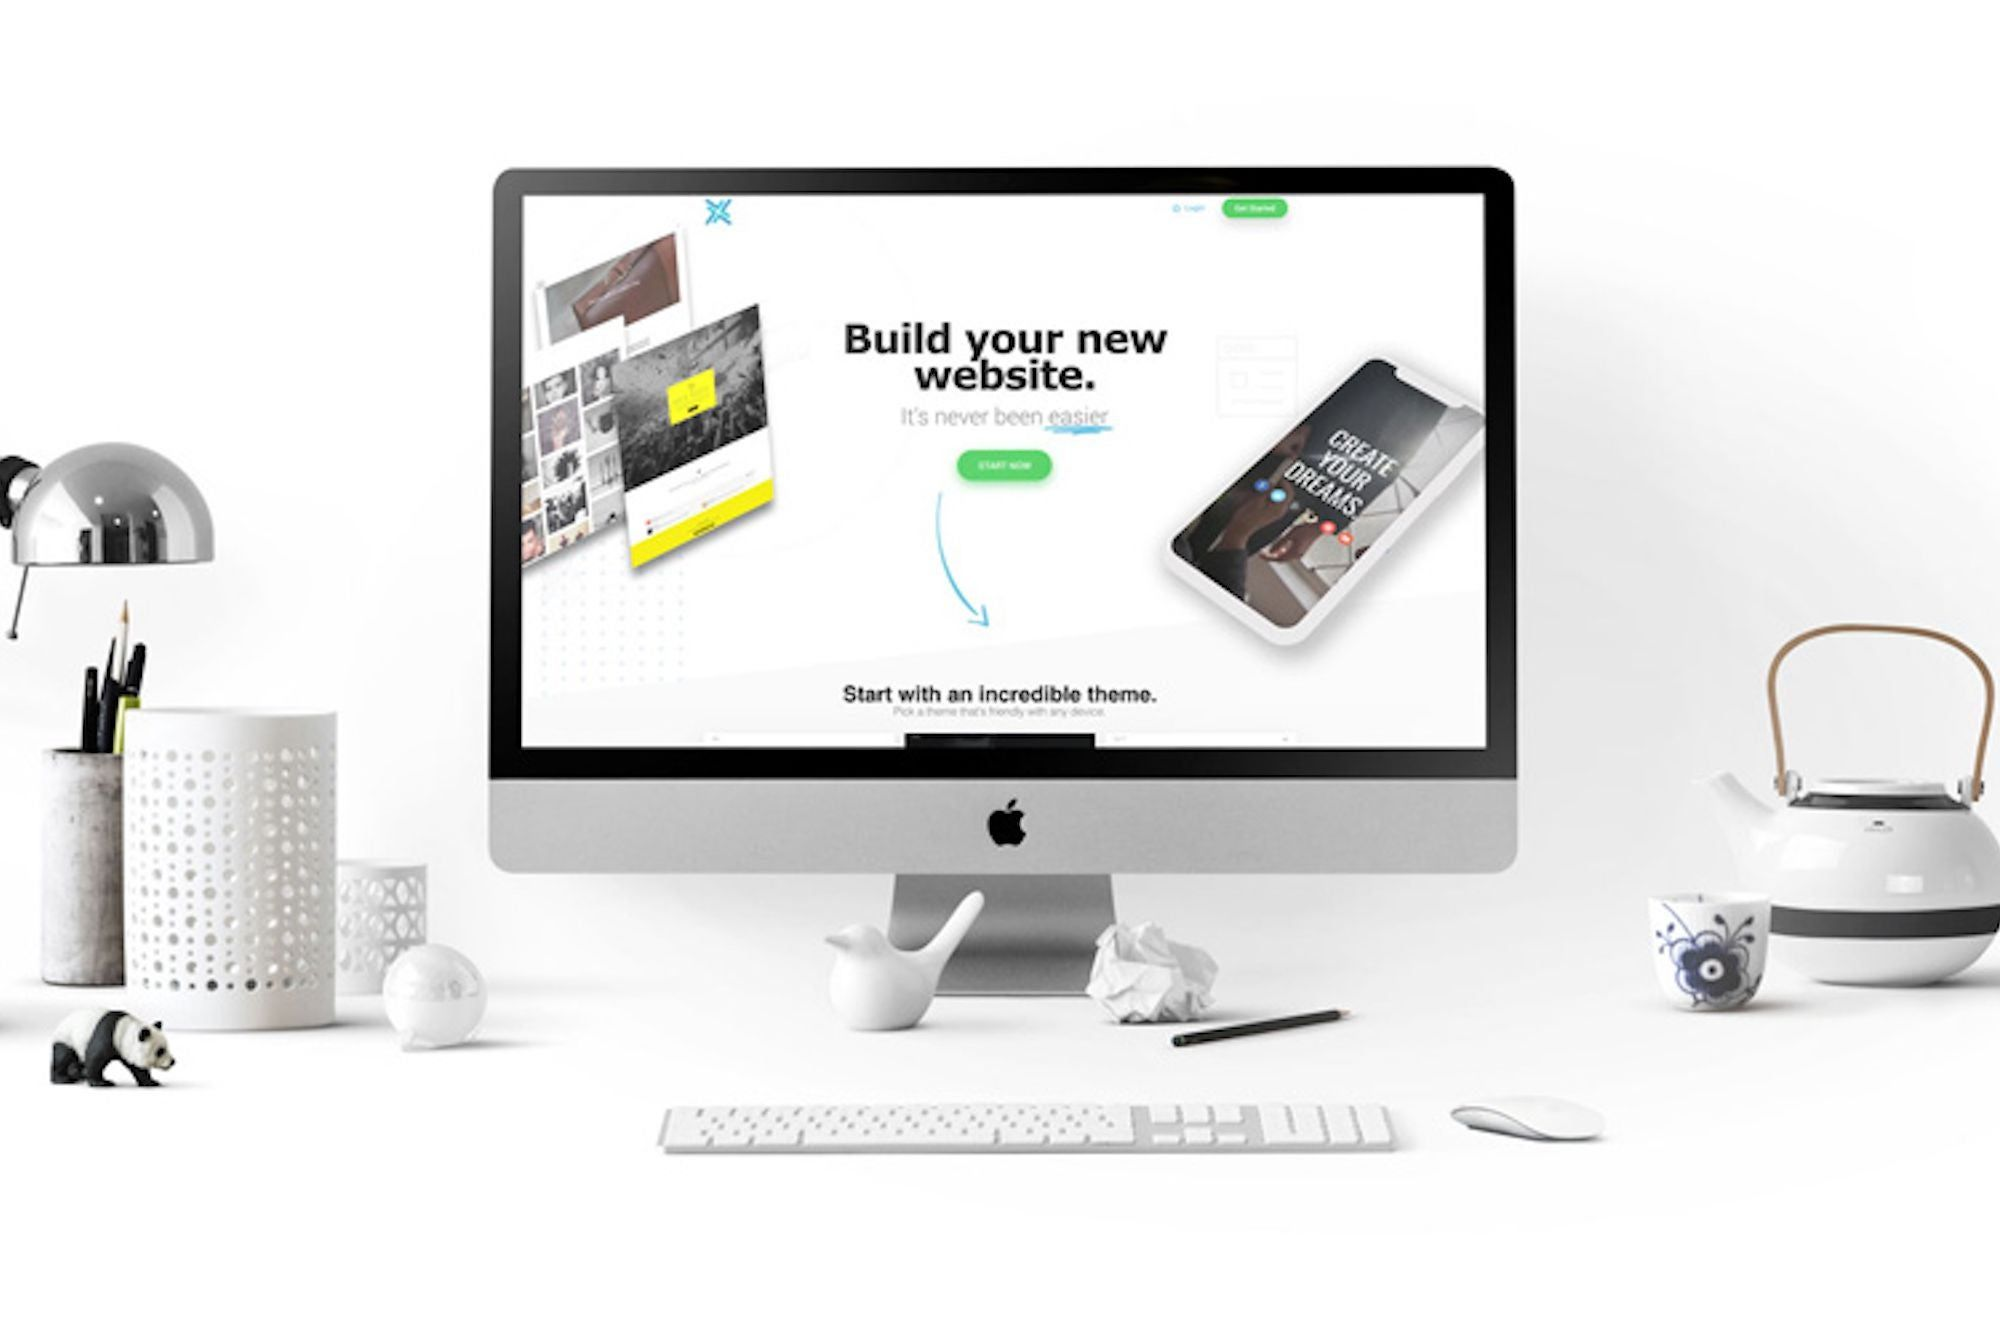 This SquarespaceAlternative Lets You Build a Website for